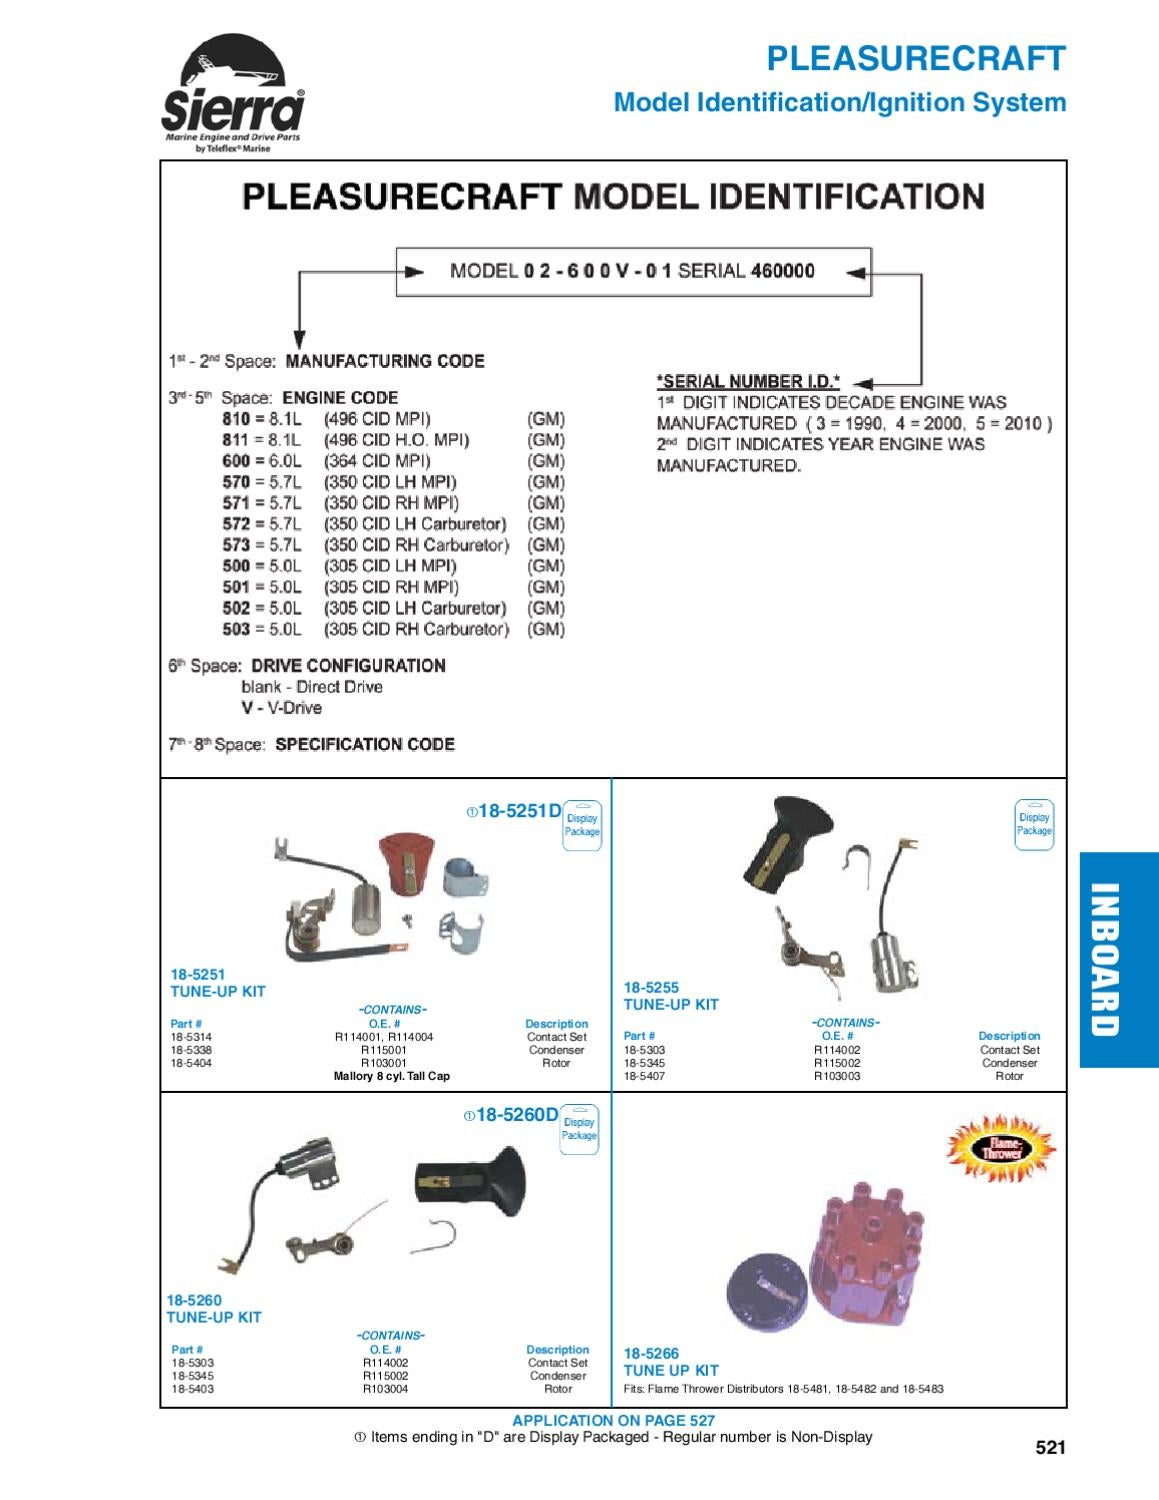 Sierra Marine Engine And Drive Parts For Pleasurecraft By Anthea Omc Alternator Wiring Diagram Webb Issuu